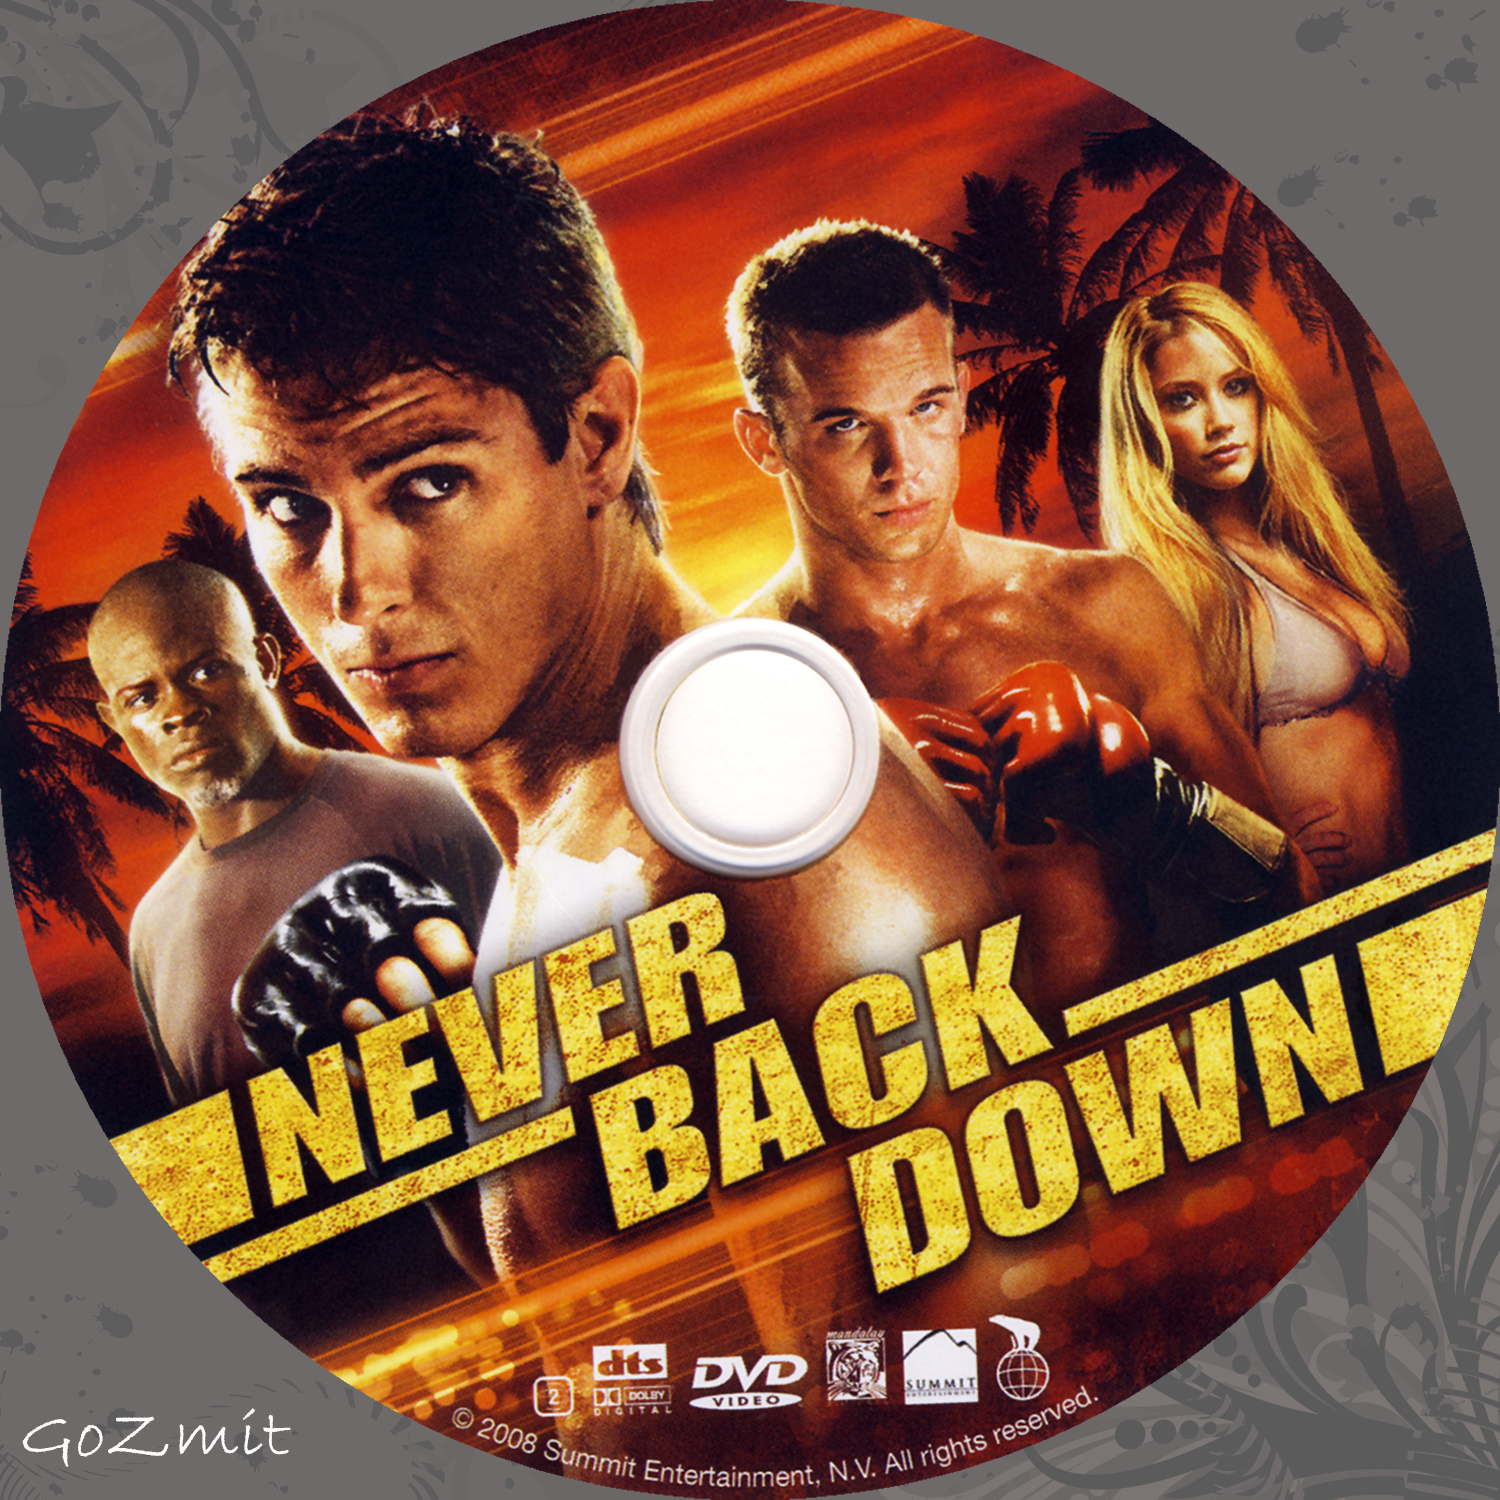 COVERS BOX SK ::: Never Back Down (2008) - high quality DVD